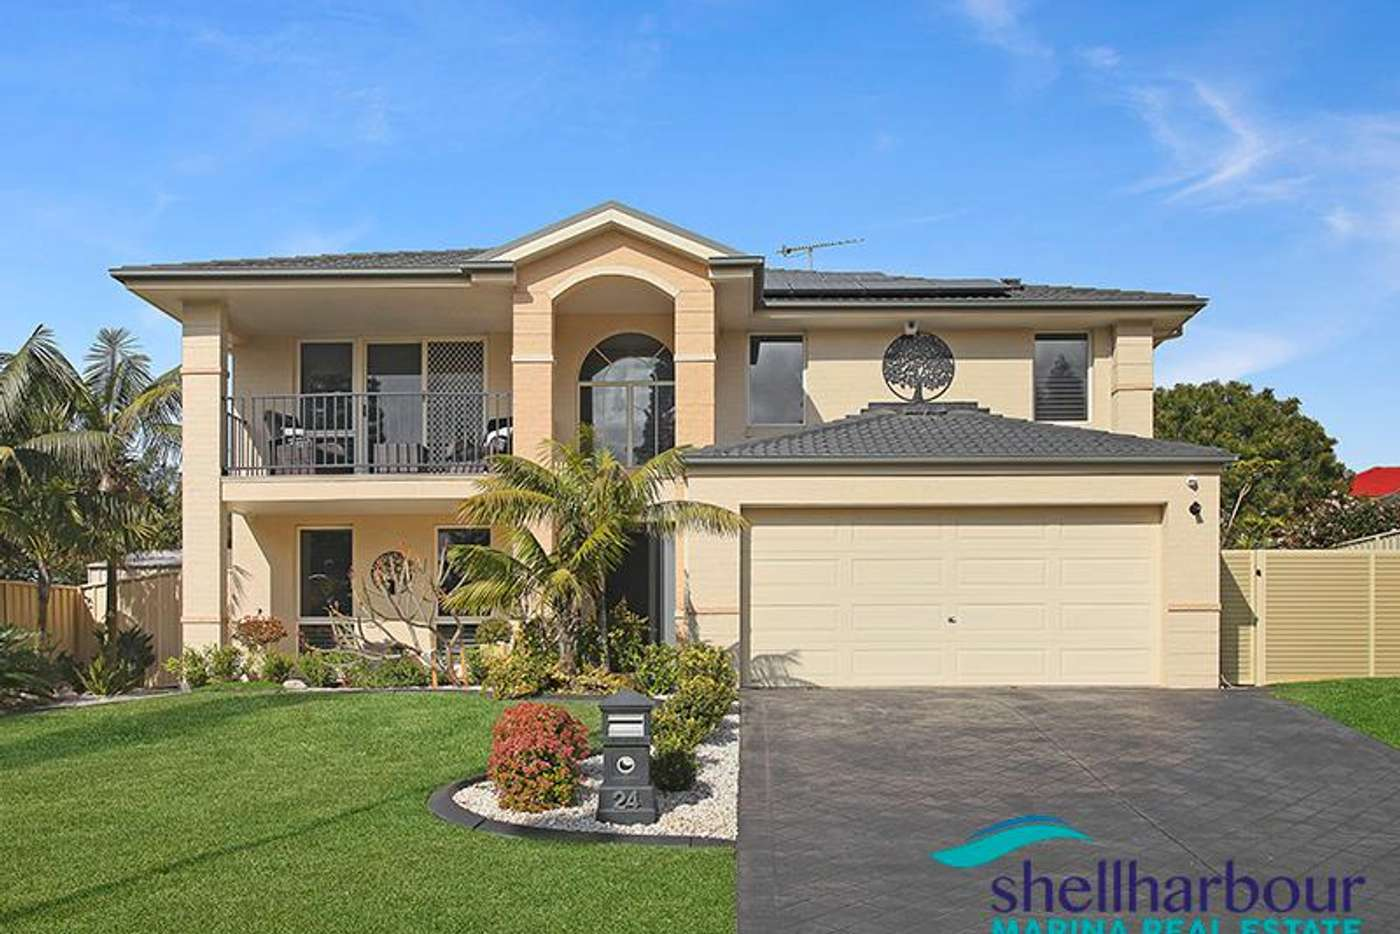 Main view of Homely house listing, 24 Cove Boulevard, Shell Cove NSW 2529